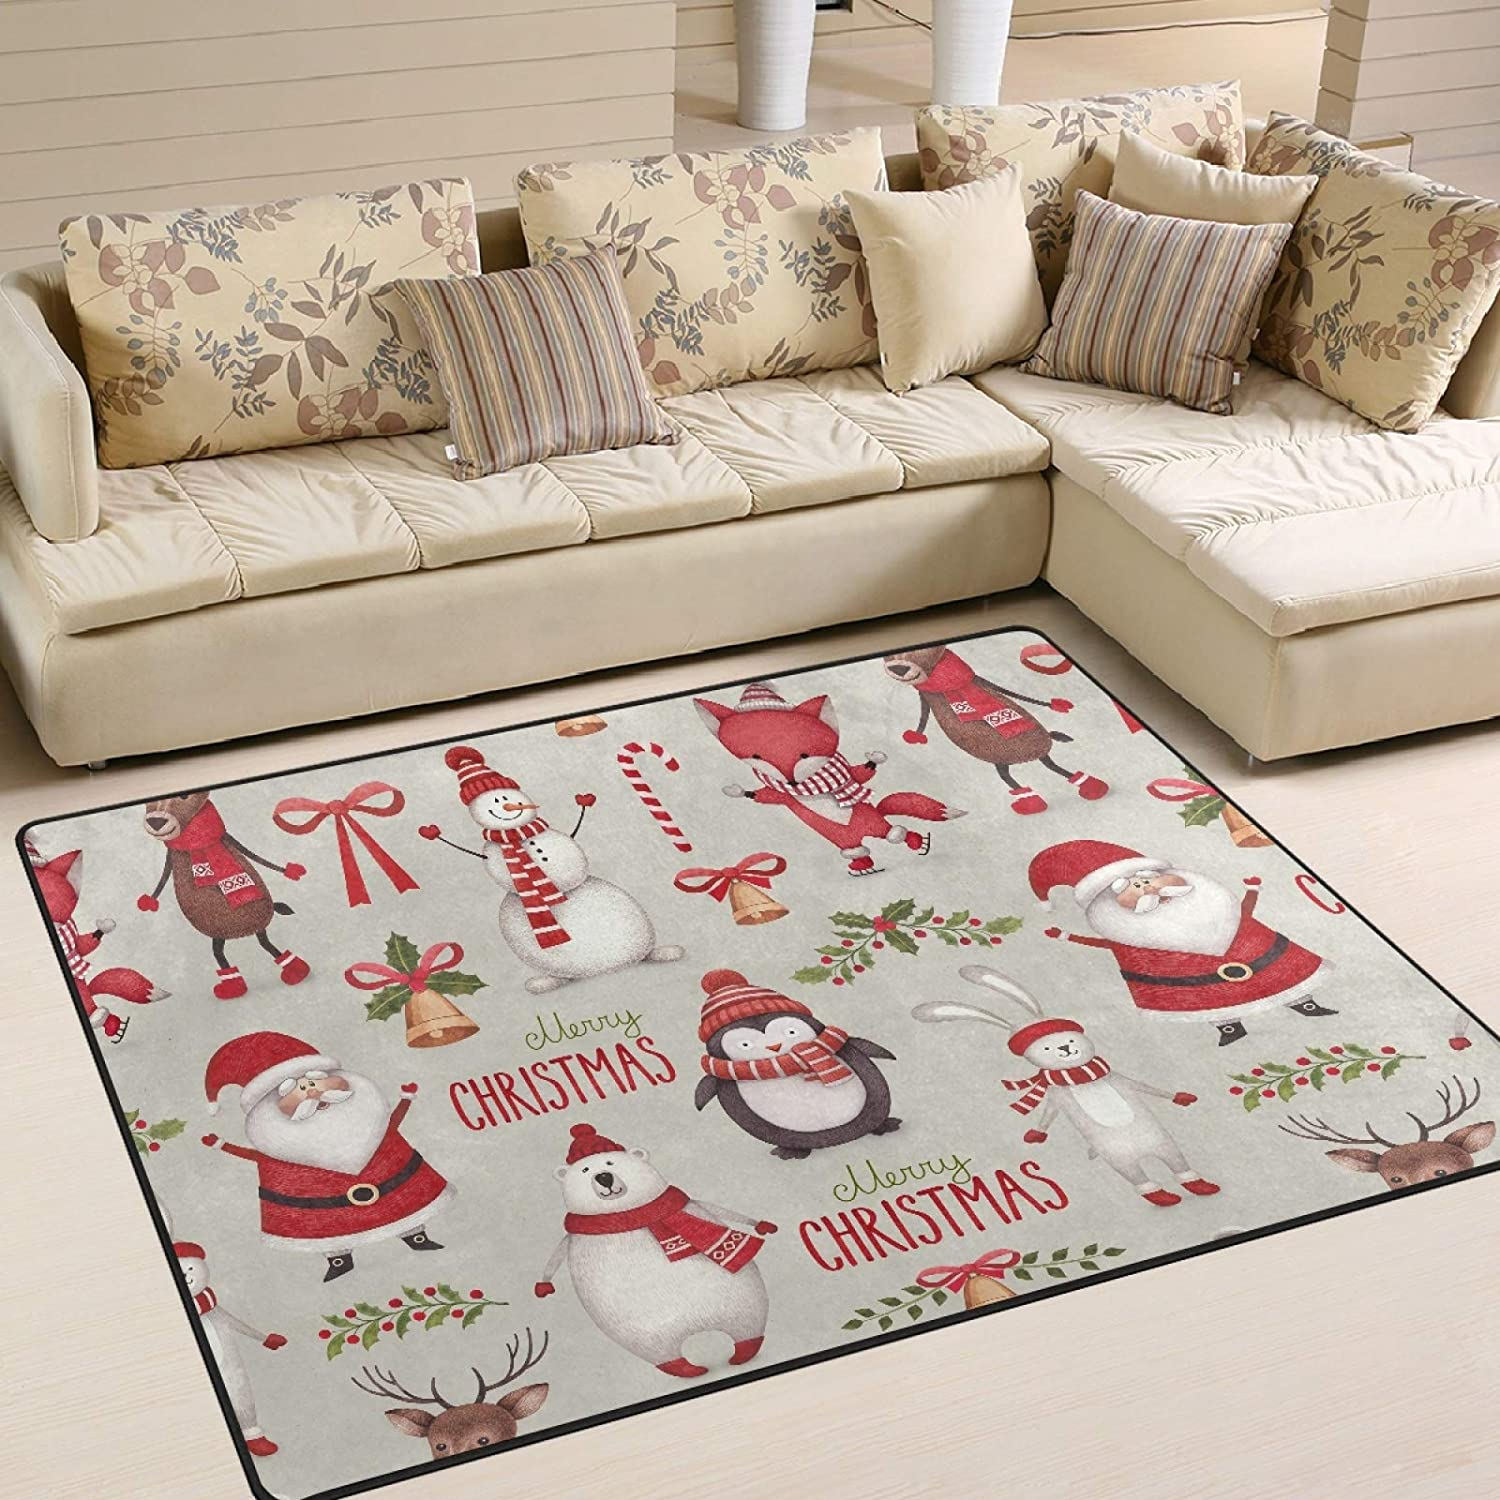 Area Rug Max 78% OFF Year-end gift Christmas Santa Claus Reindeer Slip Non Room Living Car